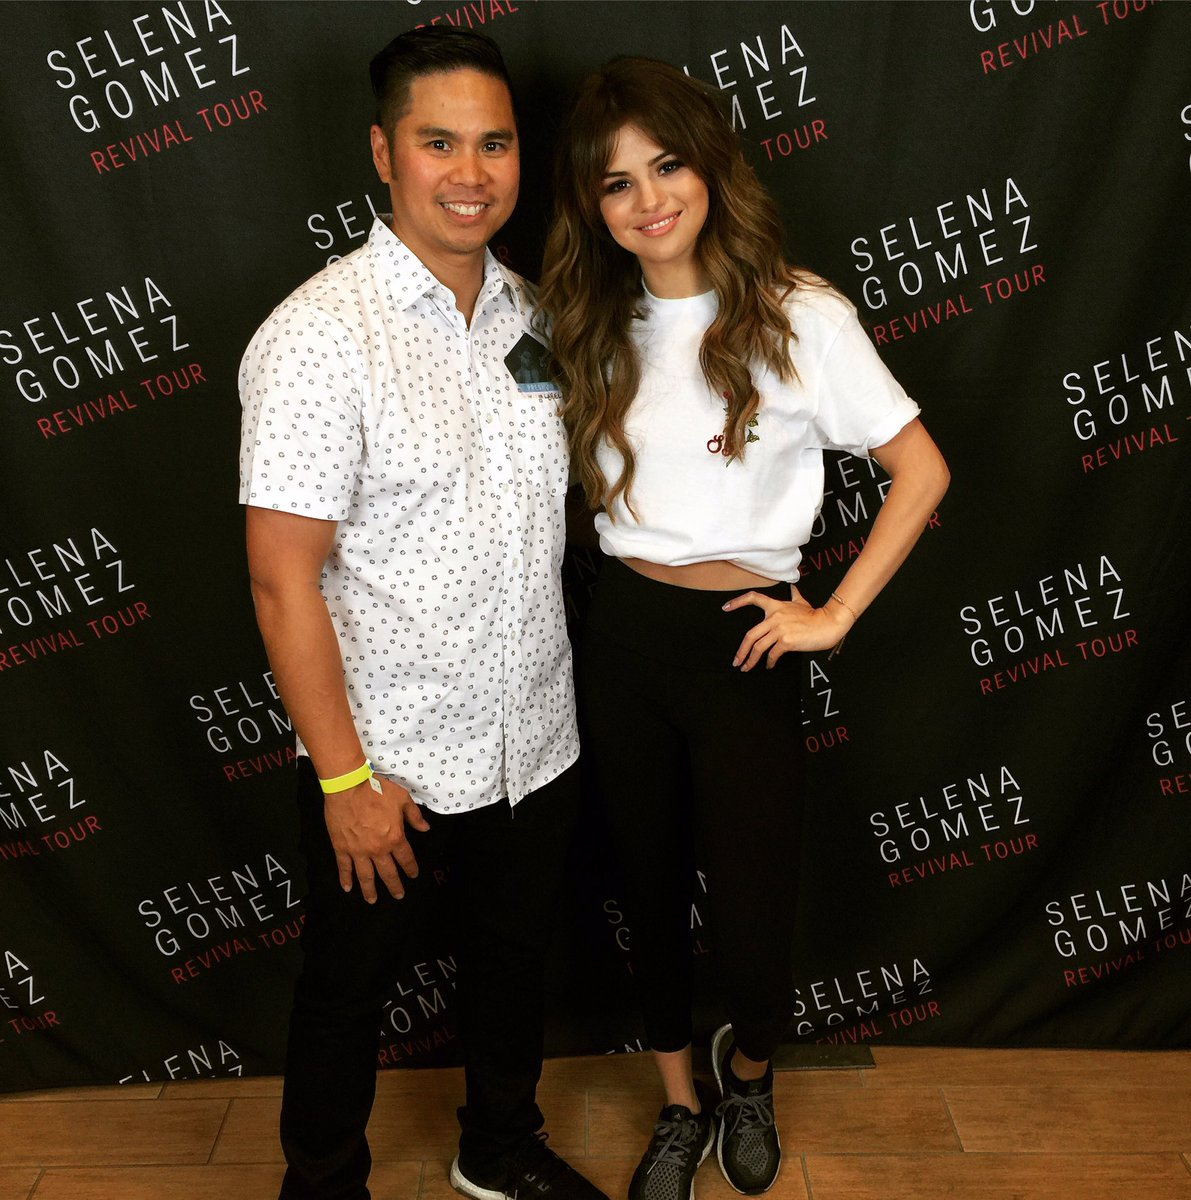 After all these years finally get to meet @selenagomez #selenagomez #selenators #revivaltour https://t.co/CxcE28Uiii